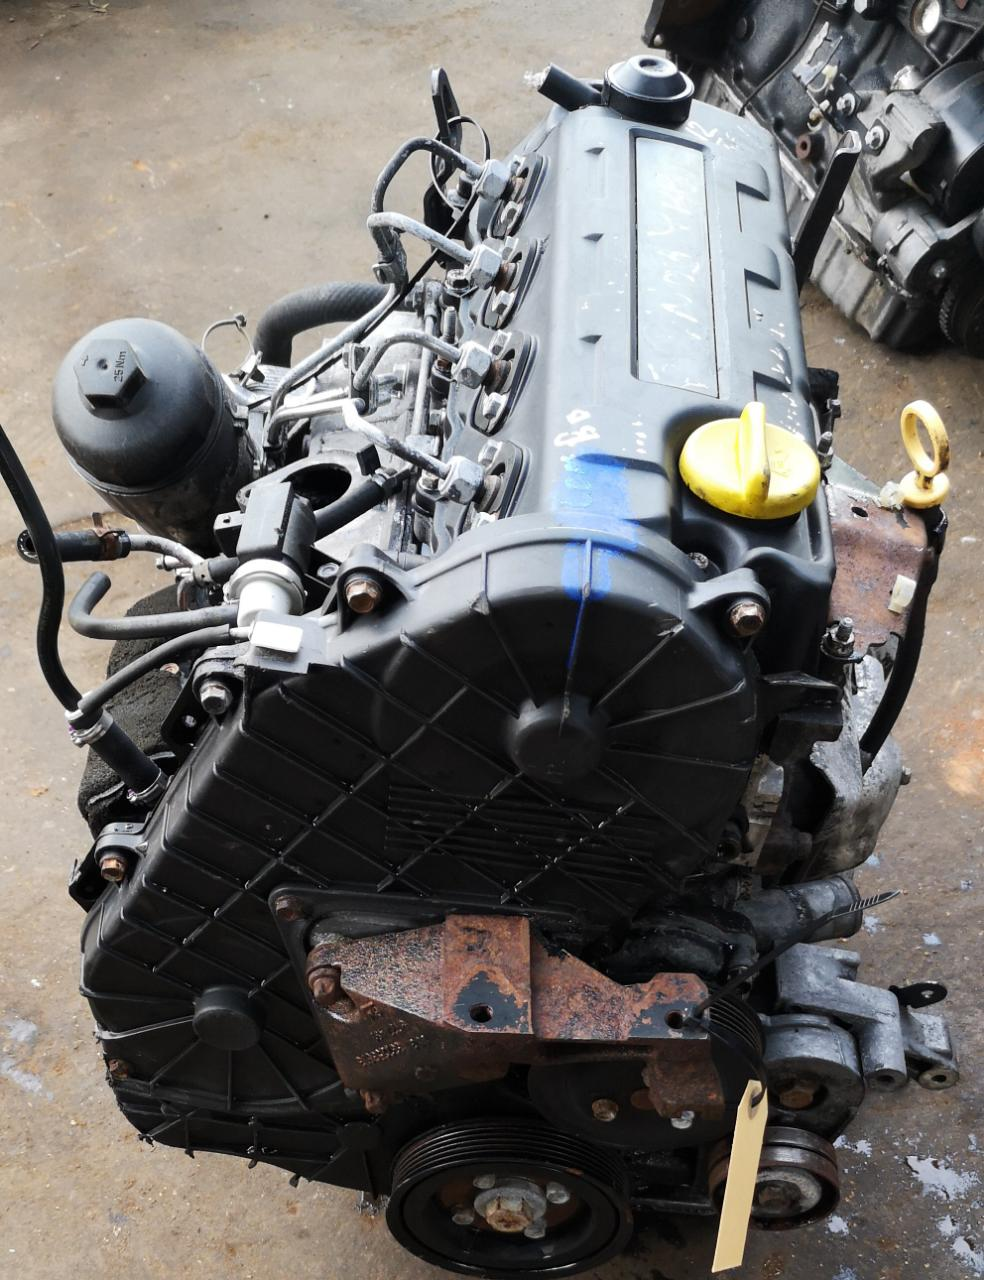 5915a5 opel corsa gamma 1.7 dti used engine for sale – myads.africa | wiring  library  wiring library